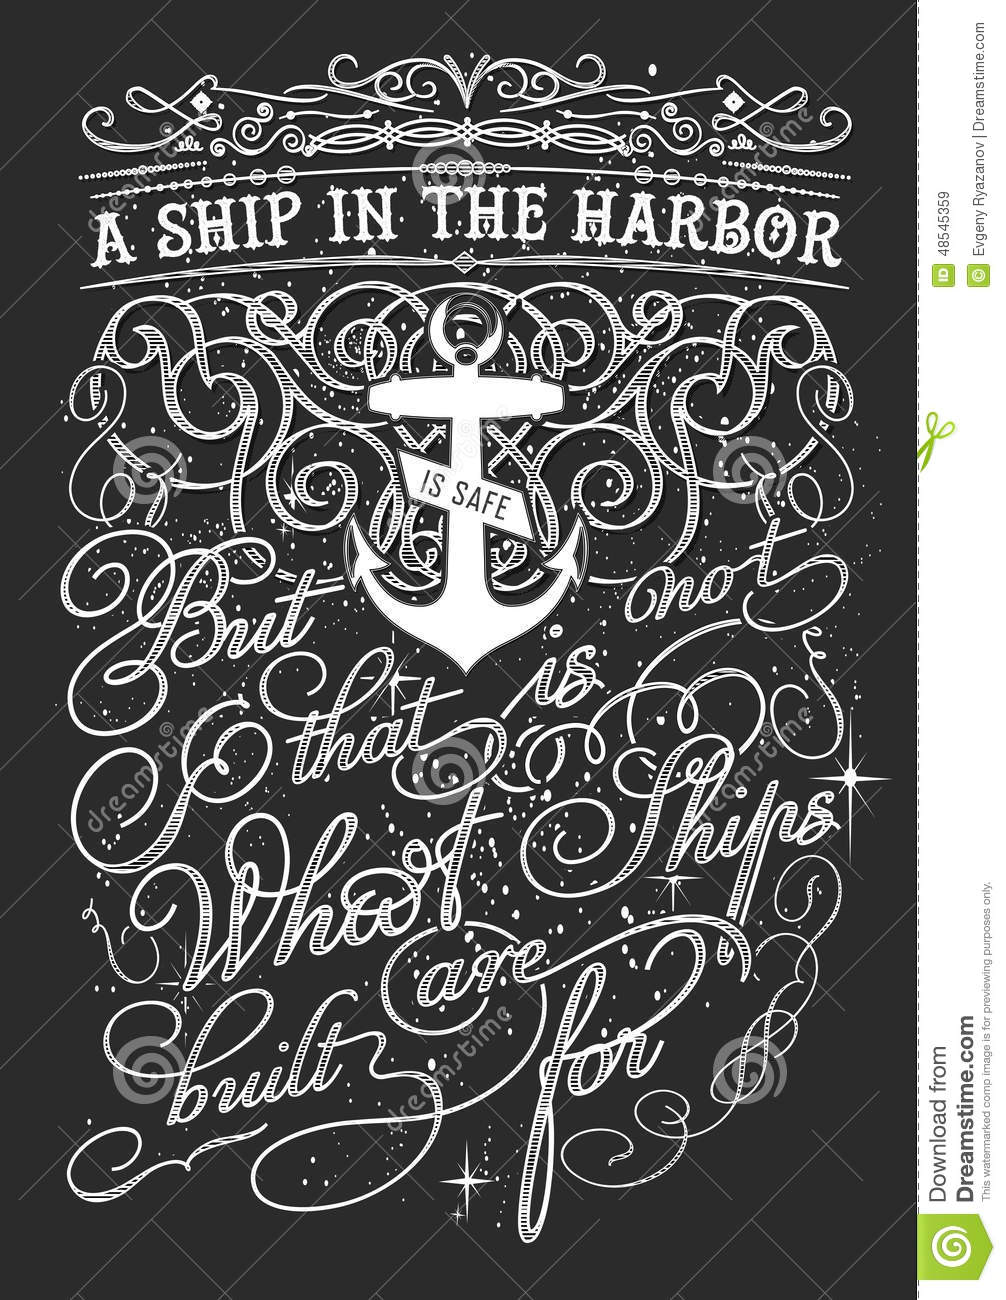 ships are safe in the harbour essay In that spirit, i hope you will write this on your wall: when a great ship is in harbor and moored, it is safe, there can be no doubt but that is not what great ships are built for by clarissa pinkola estes.